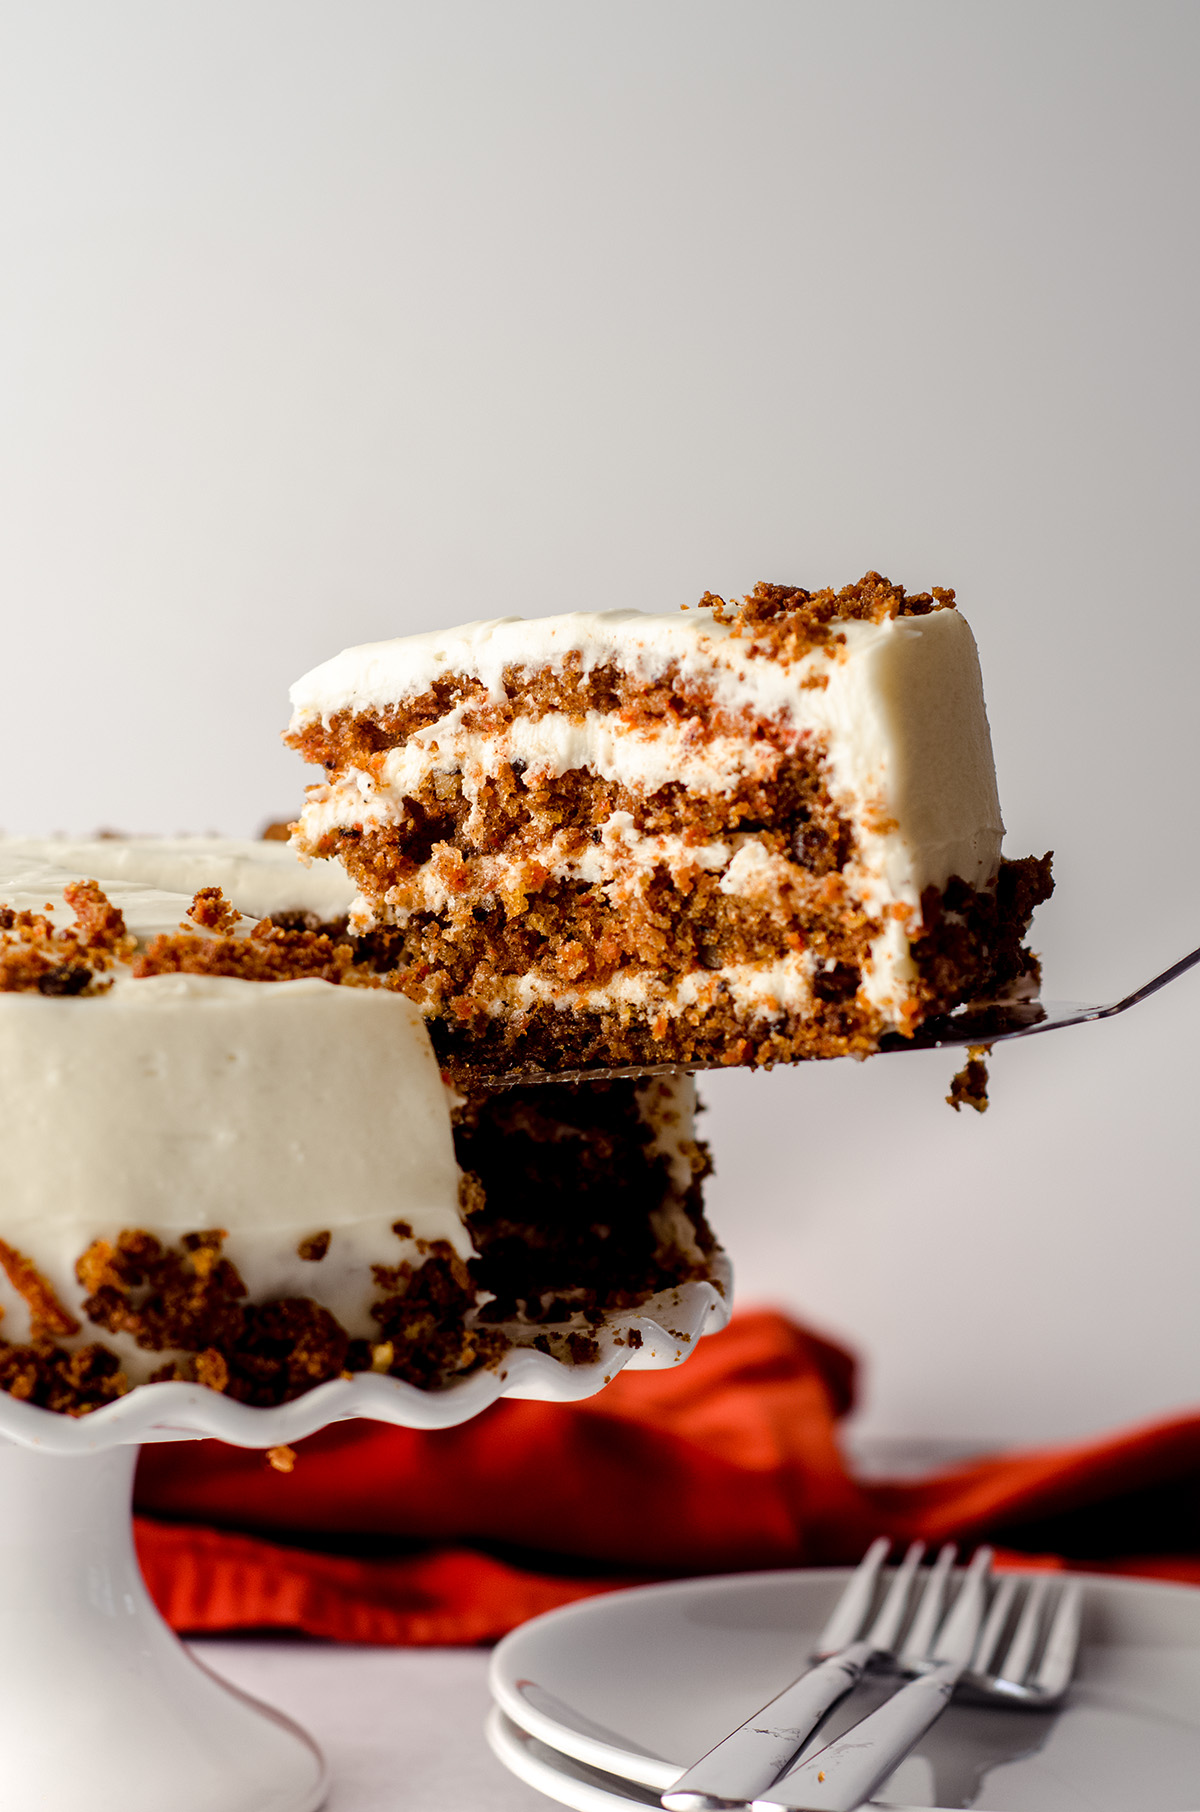 a slice of carrot walnut cake being lifted out from the cake to serve